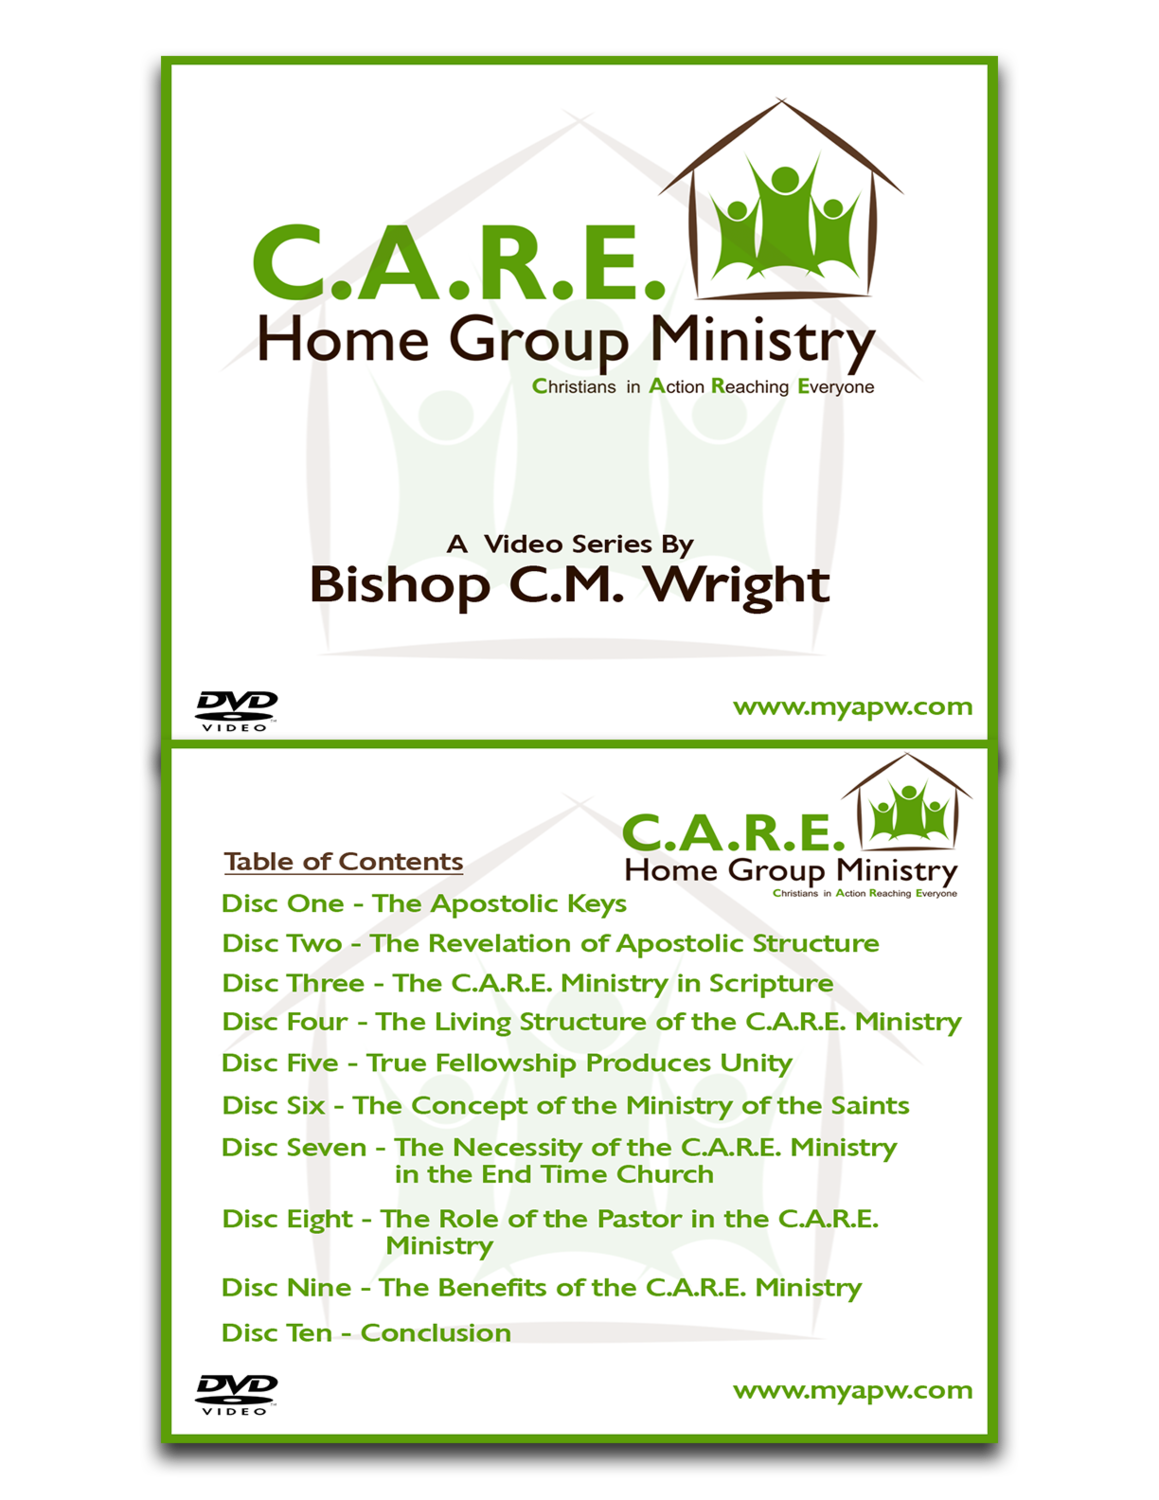 C.A.R.E - Home Group Ministry